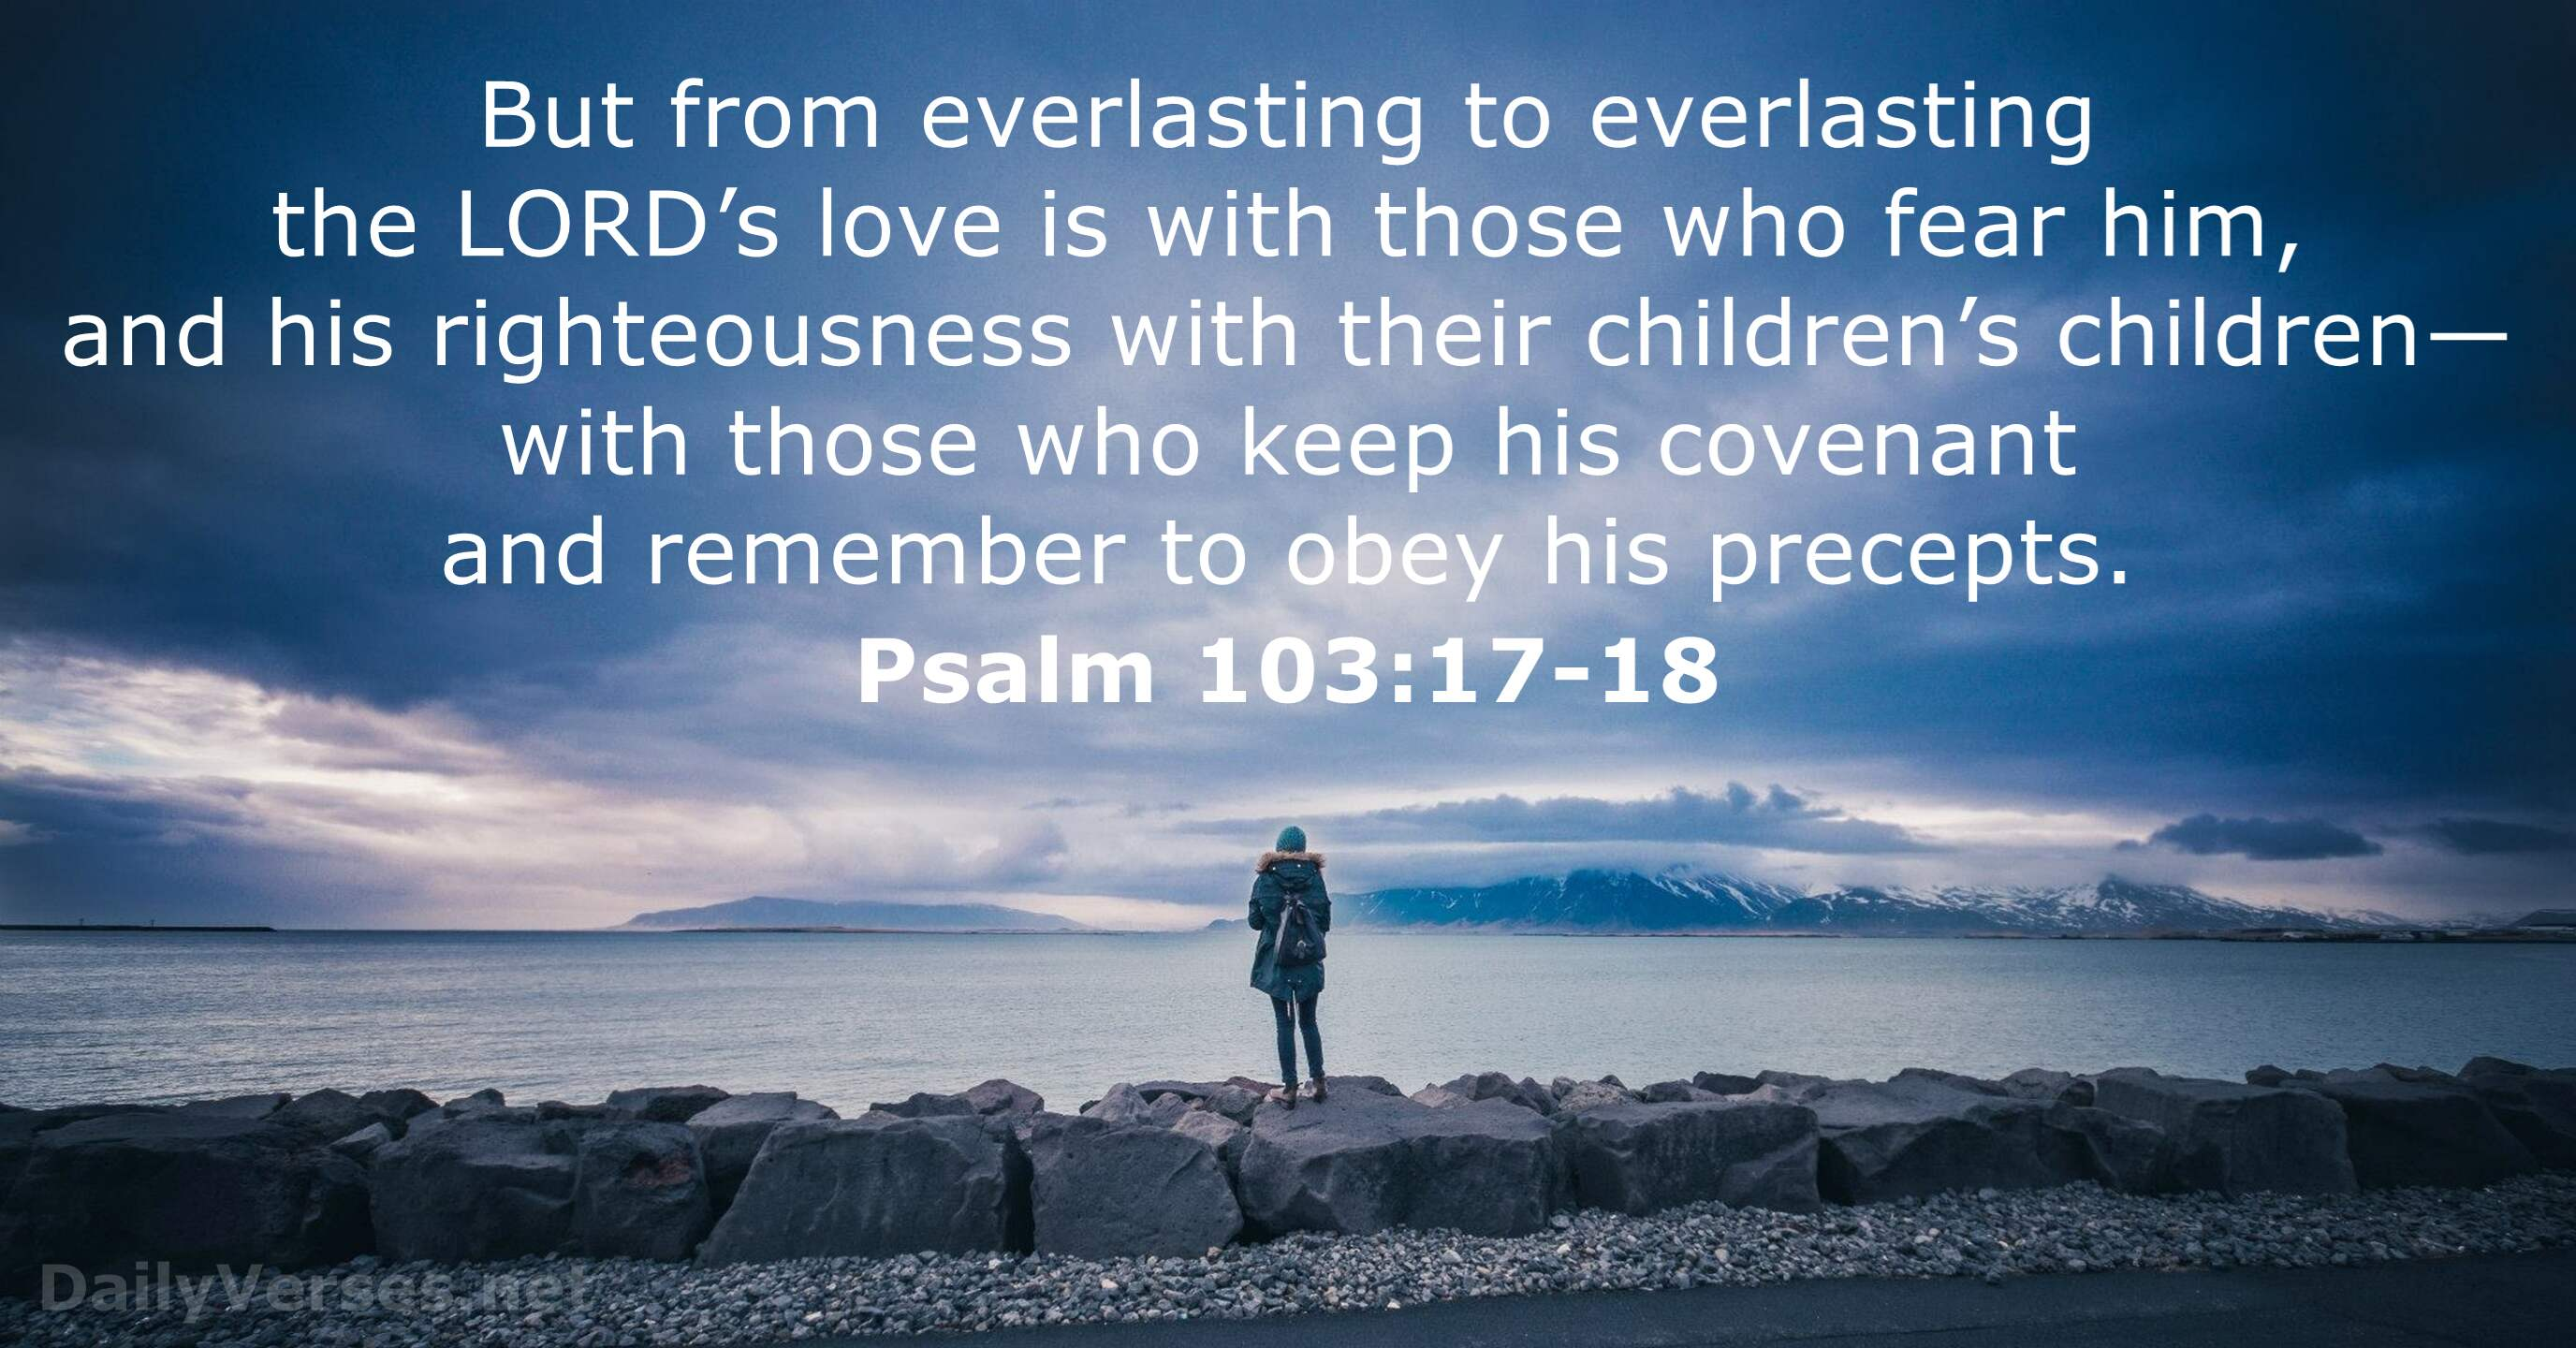 August 15, 2019 - Bible verse of the day - Psalm 103:17-18 ...